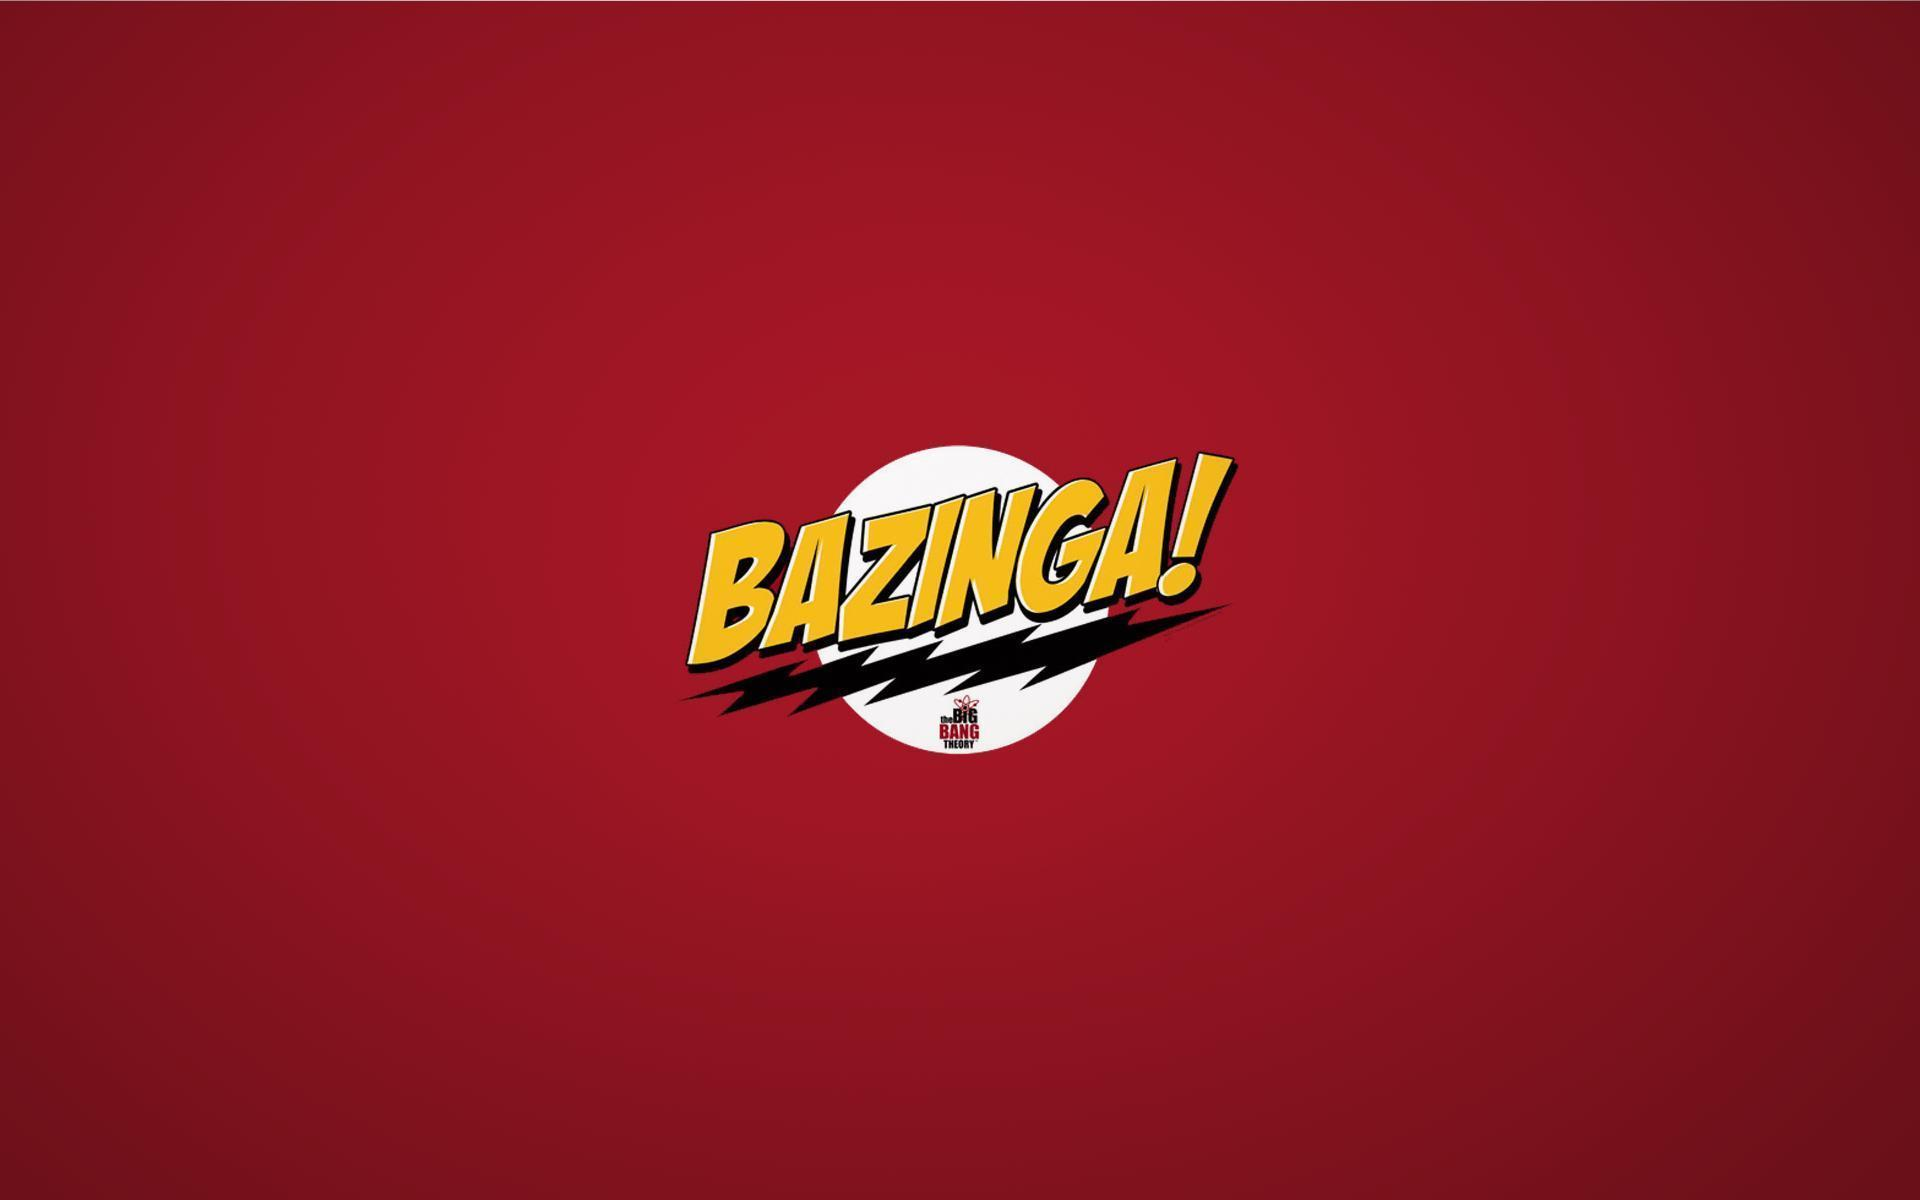 82 The Big Bang Theory Wallpapers | The Big Bang Theory Backgrounds